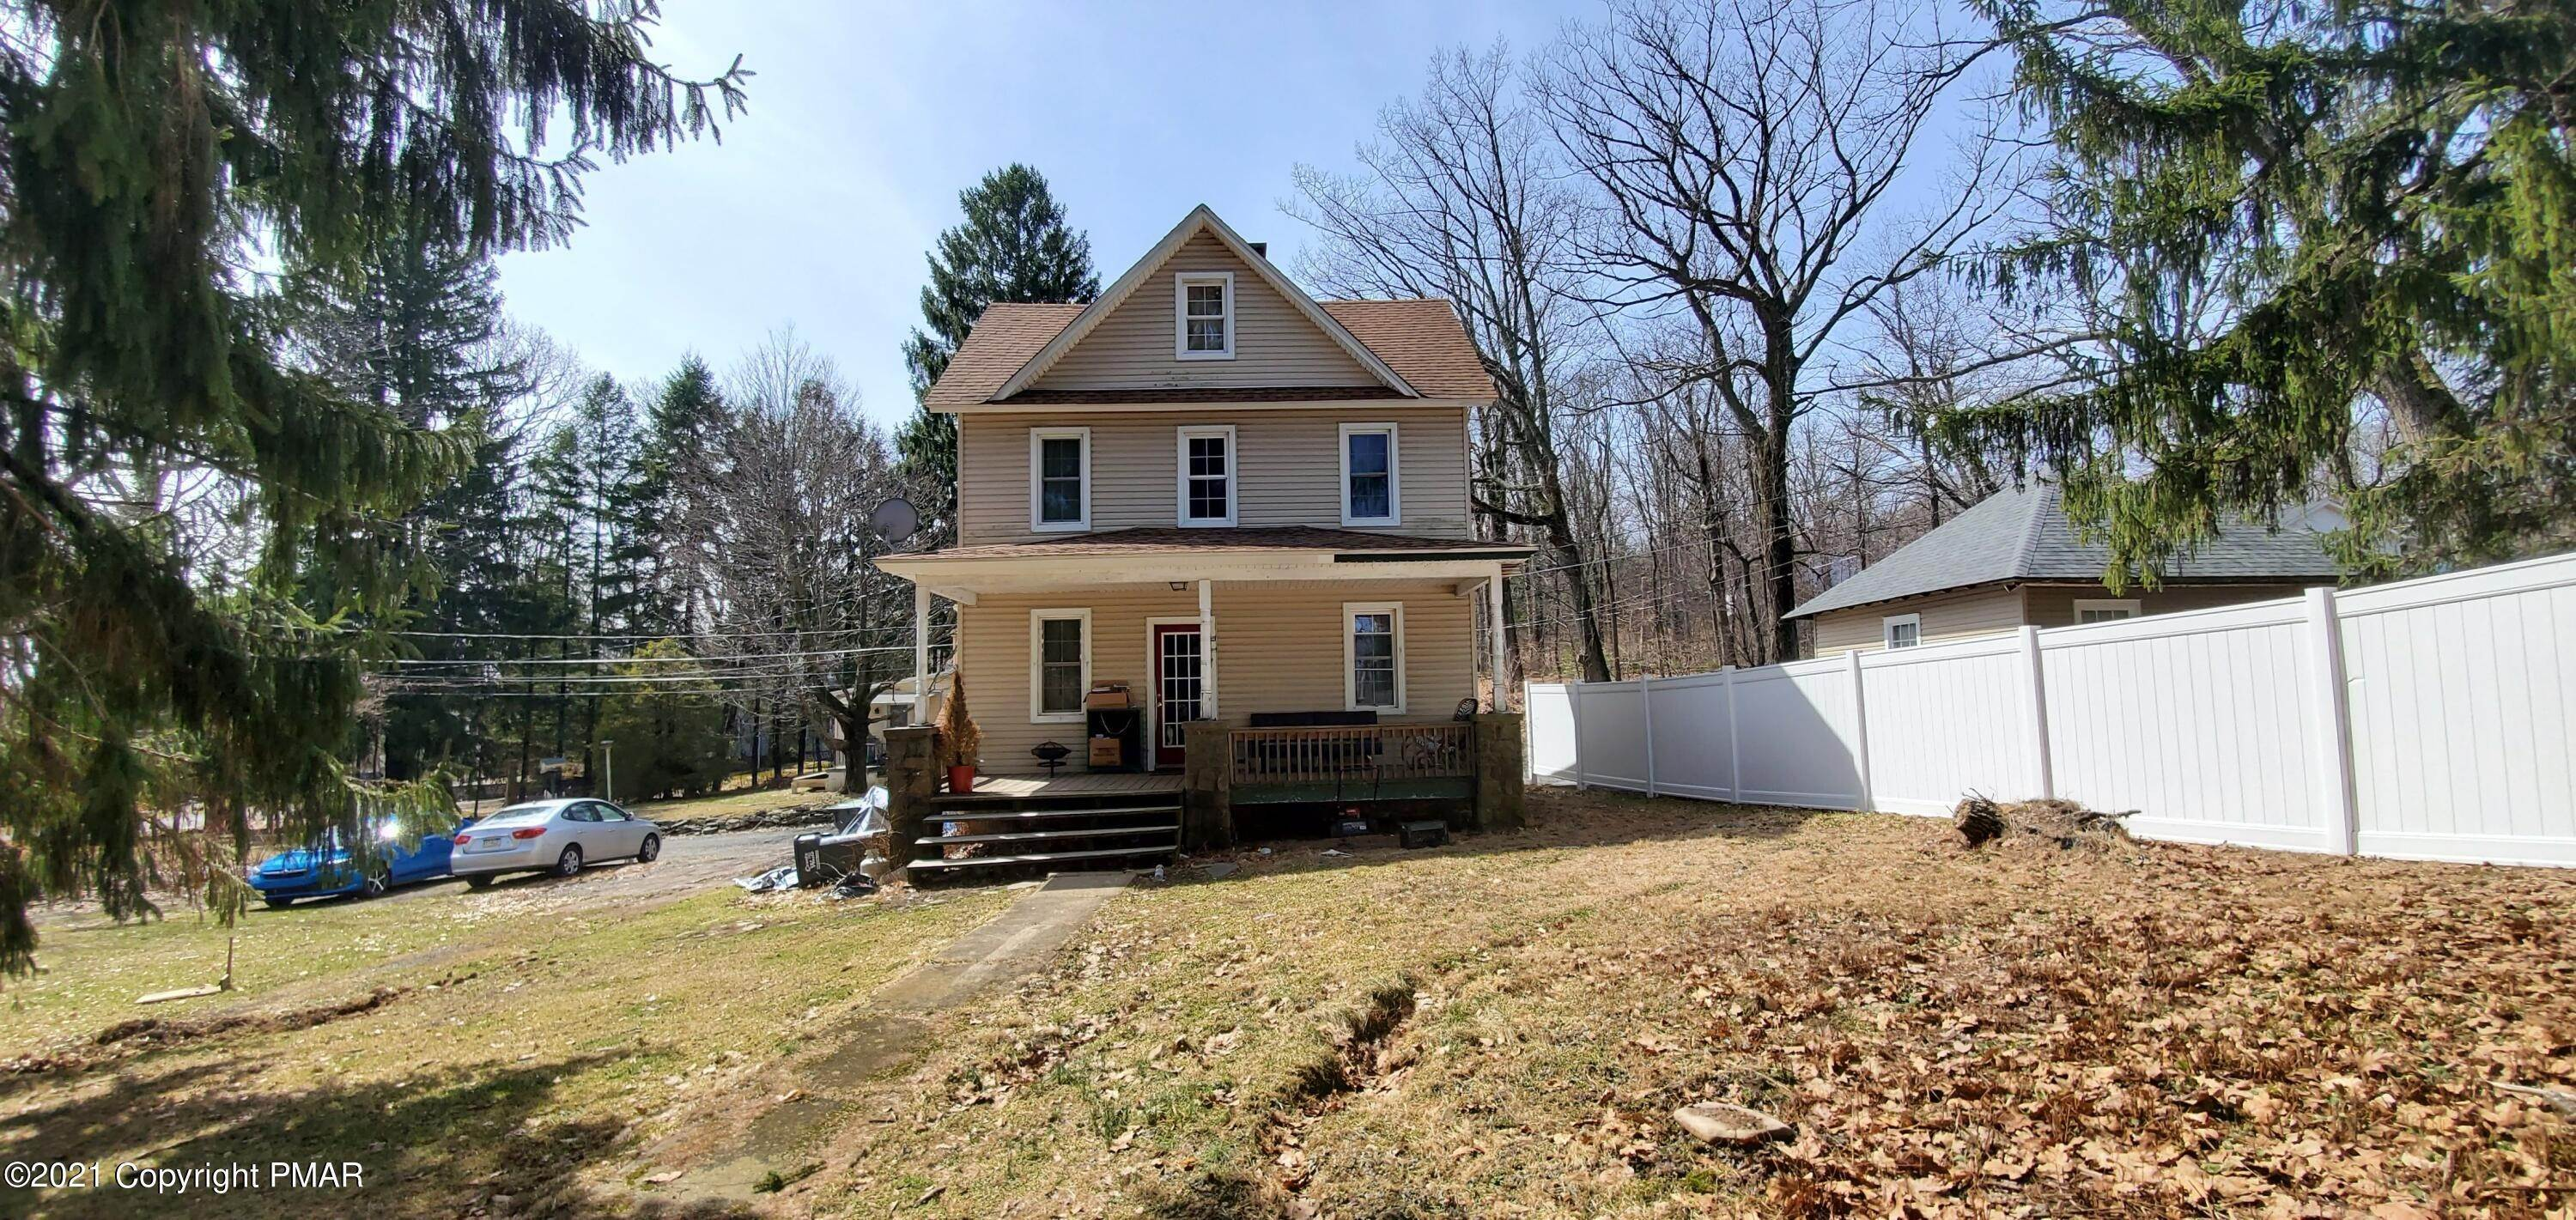 Single Family Homes for Sale at 11 Smith Aly Mount Pocono, Pennsylvania 18344 United States